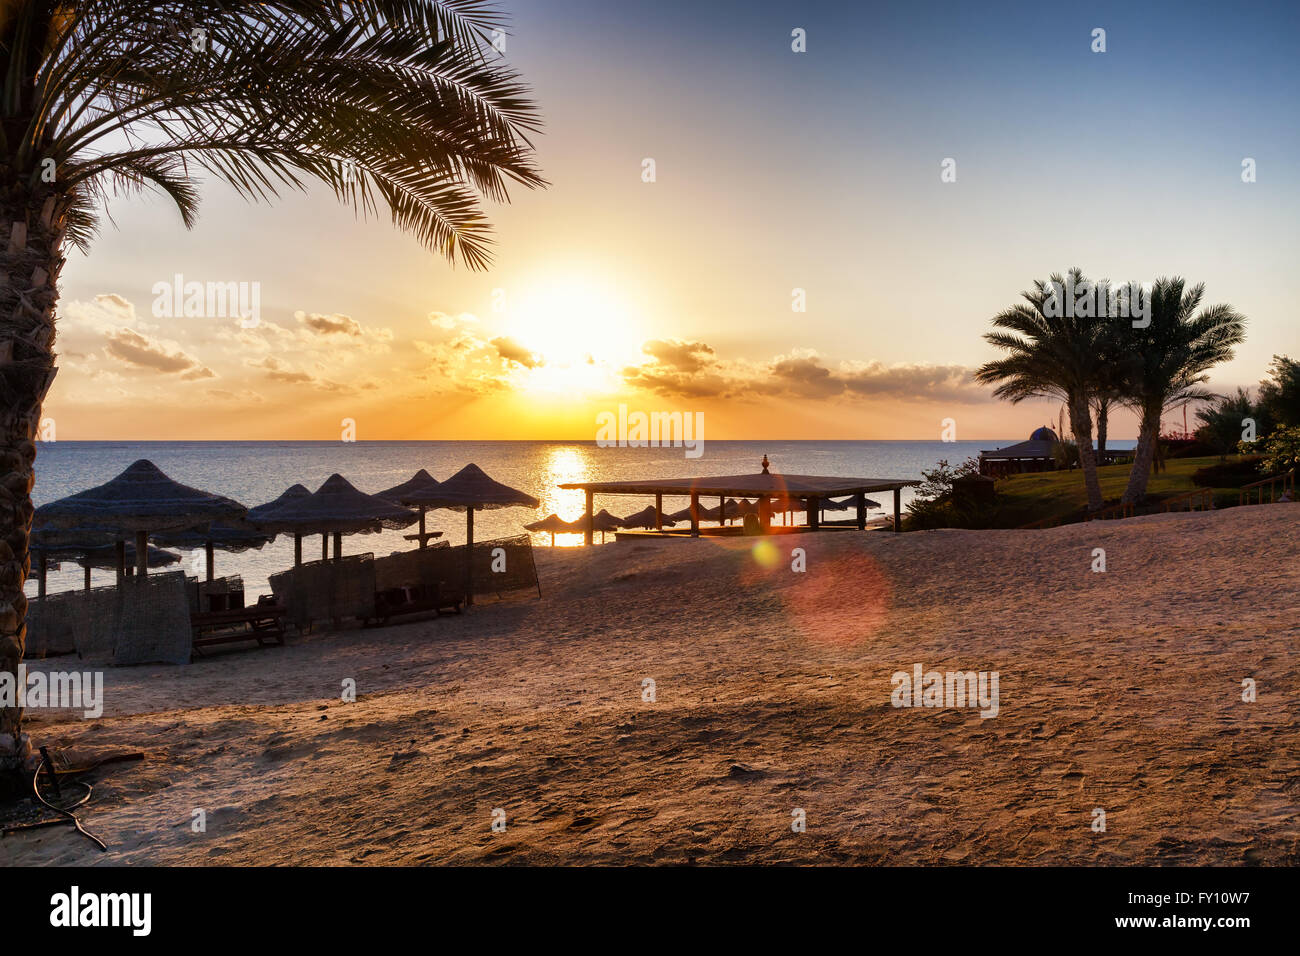 beatiful sunset on the beach - Stock Image